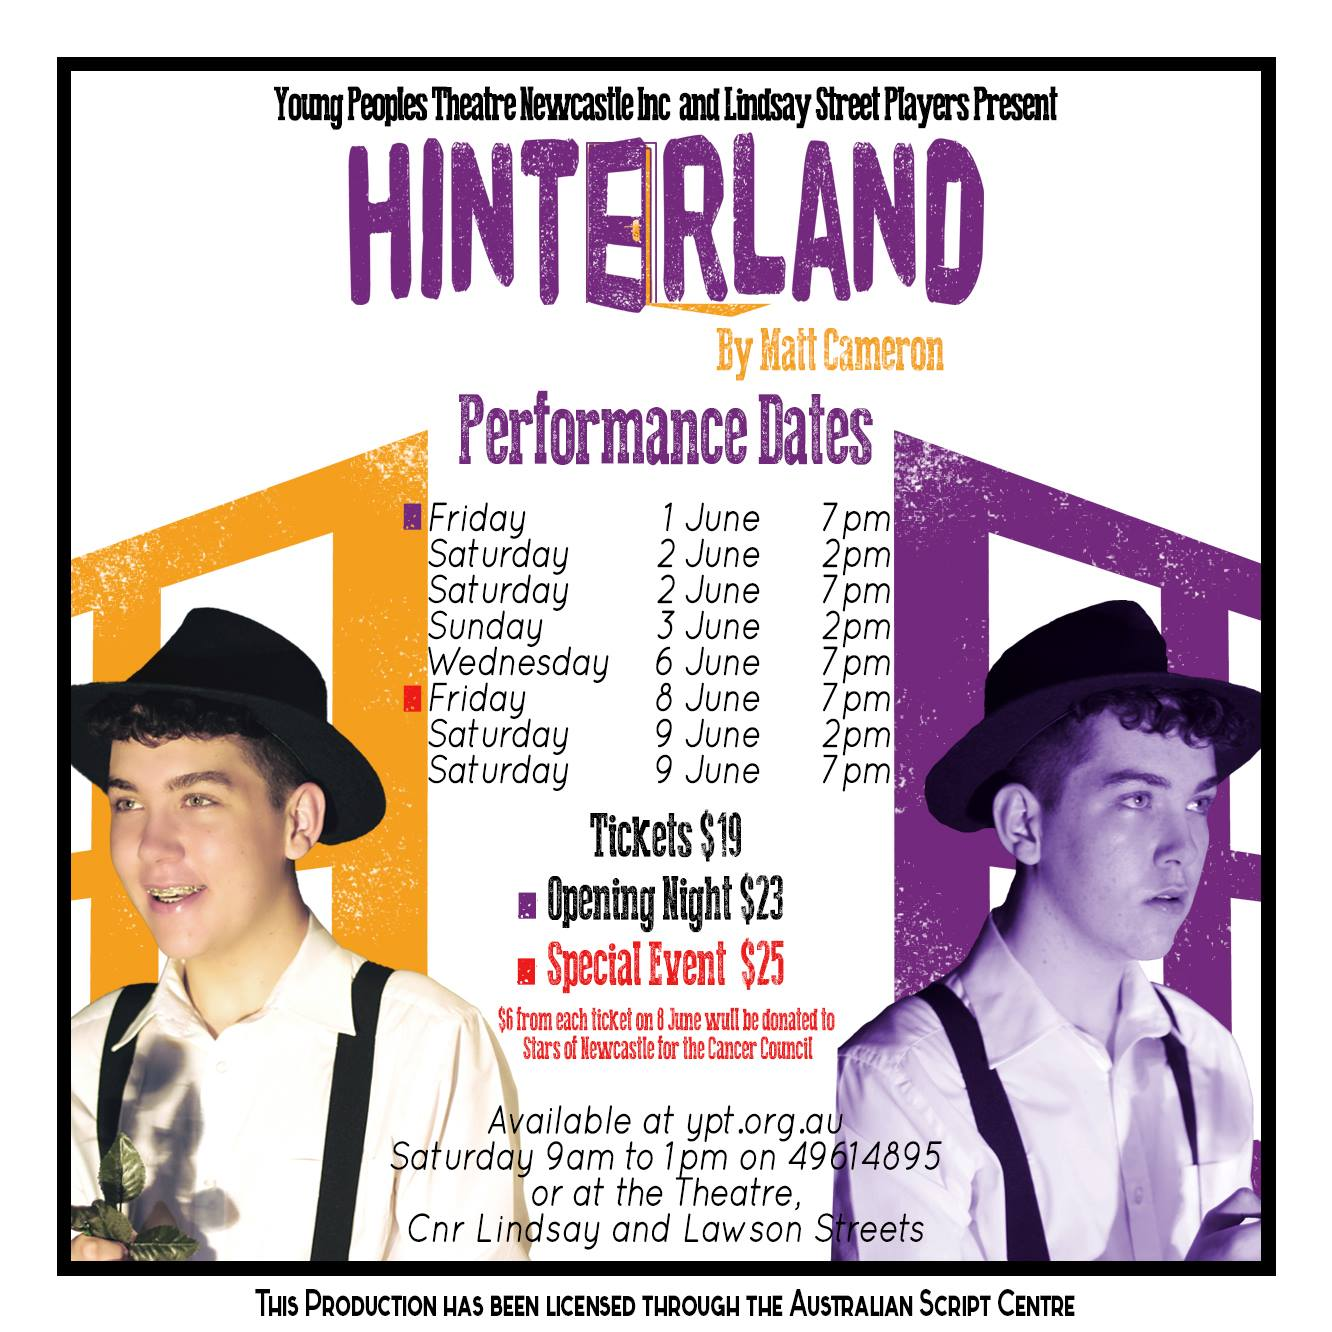 Hinterland tickets now on sale